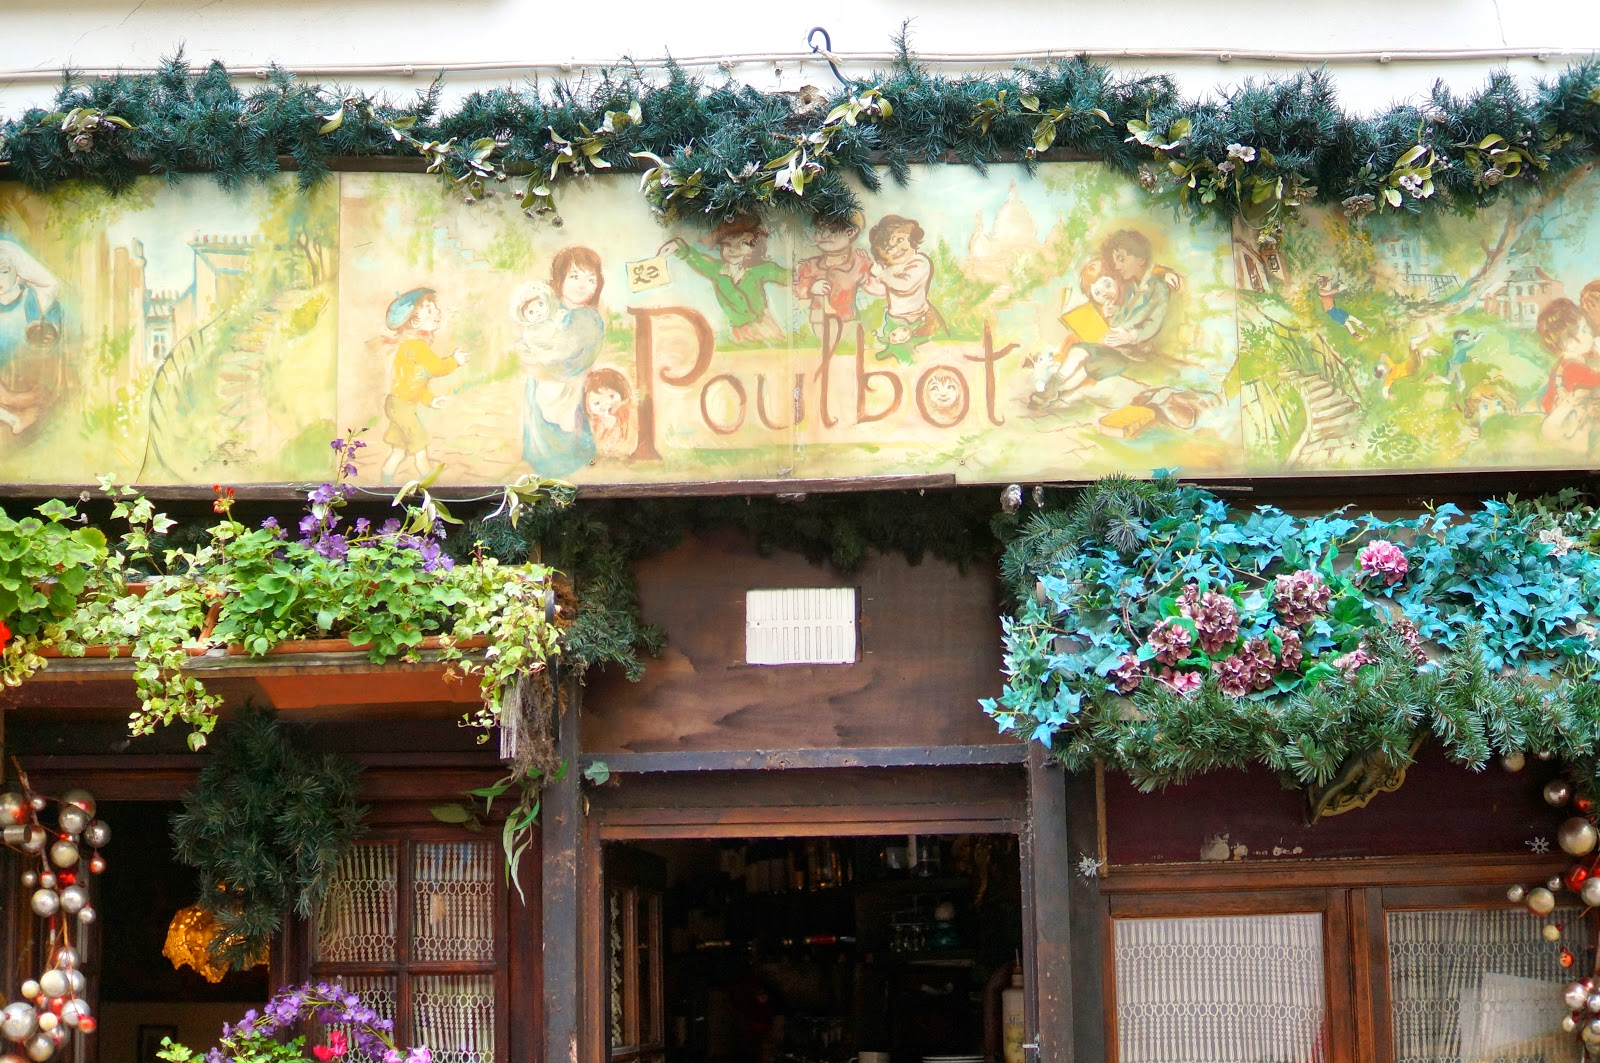 poulbot paris